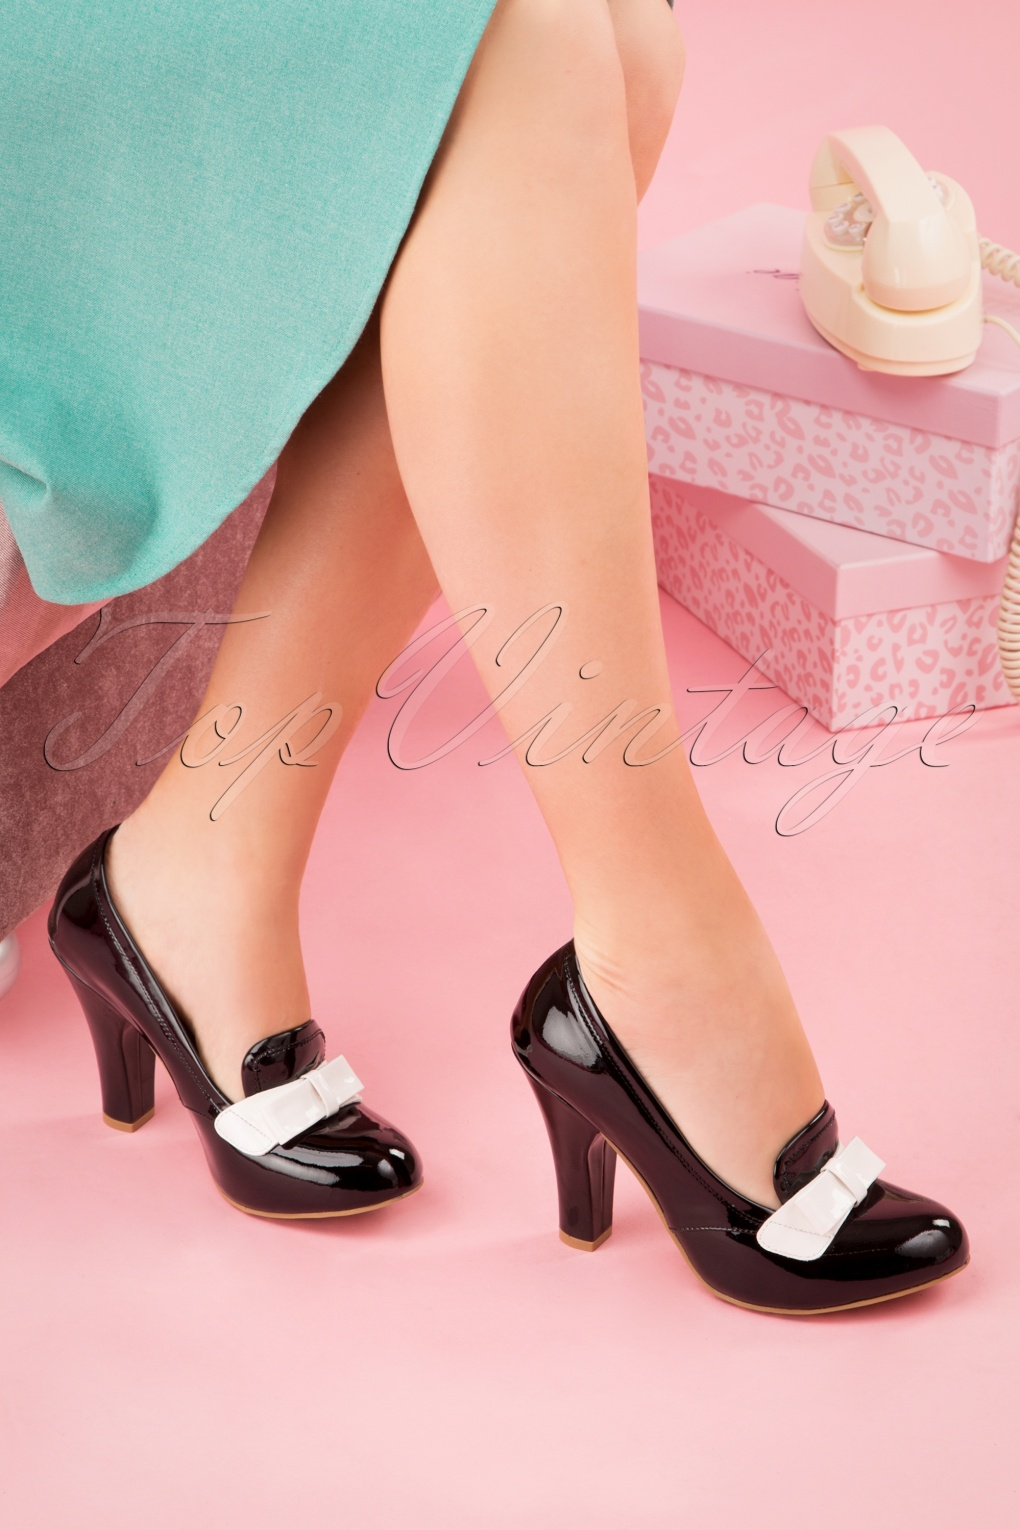 1960s Style Dresses, Clothing, Shoes UK 60s June Ultimate Sophistication Pumps in Black £112.51 AT vintagedancer.com